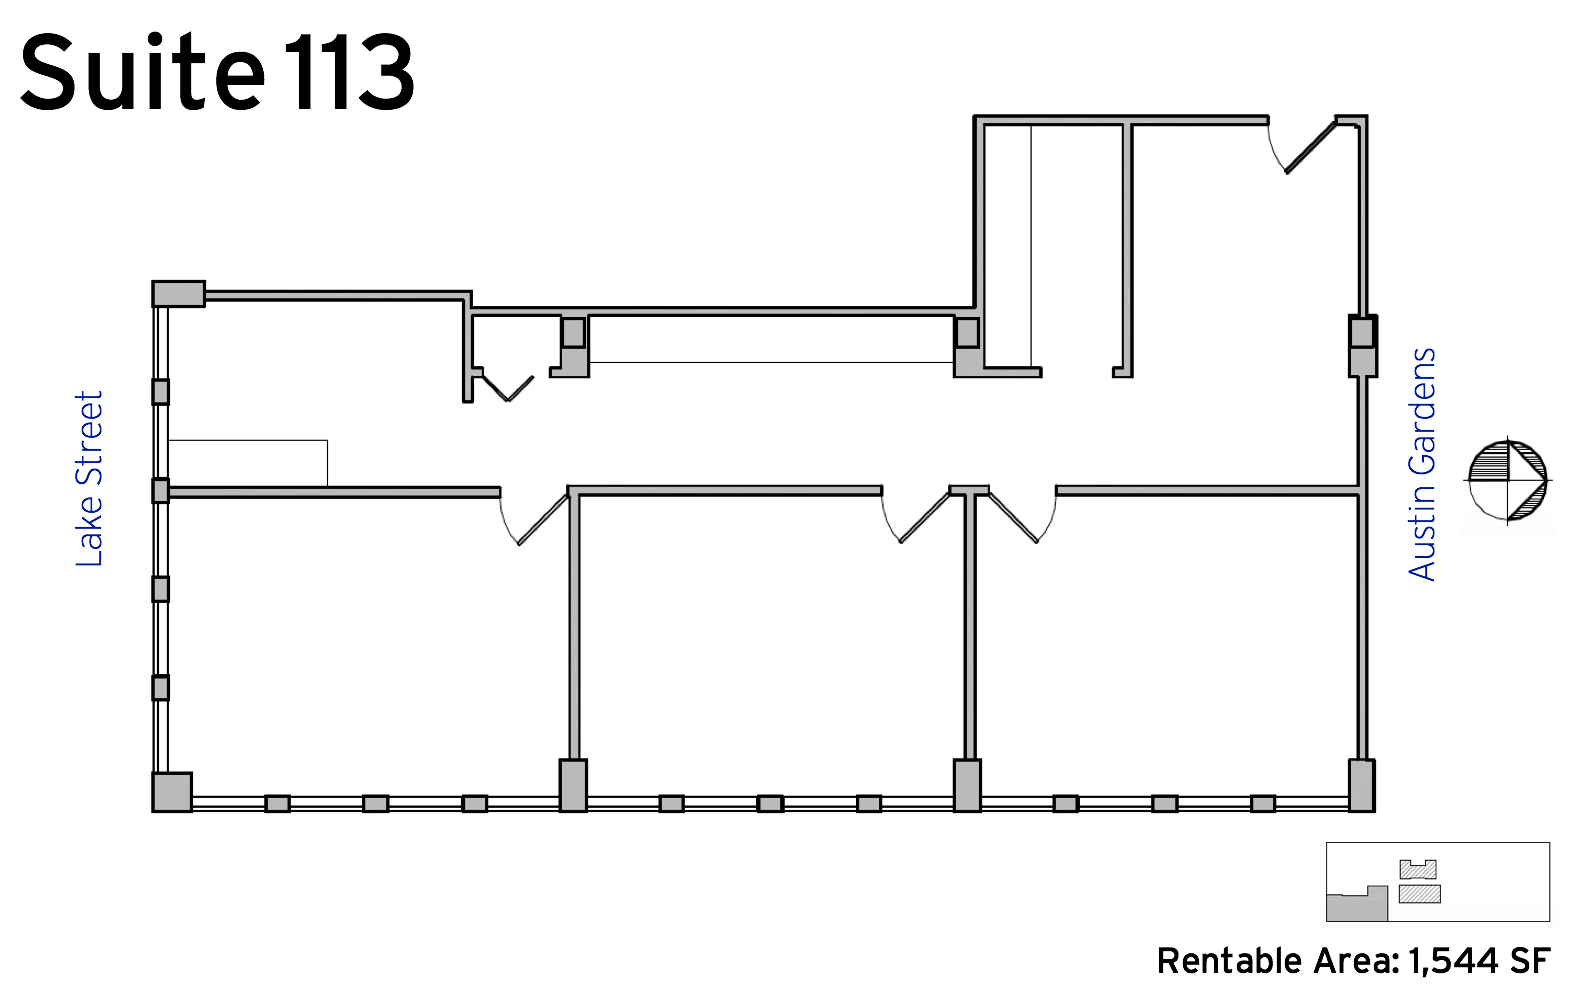 Suite 113 - 1010 Lake Street available office space floor plan